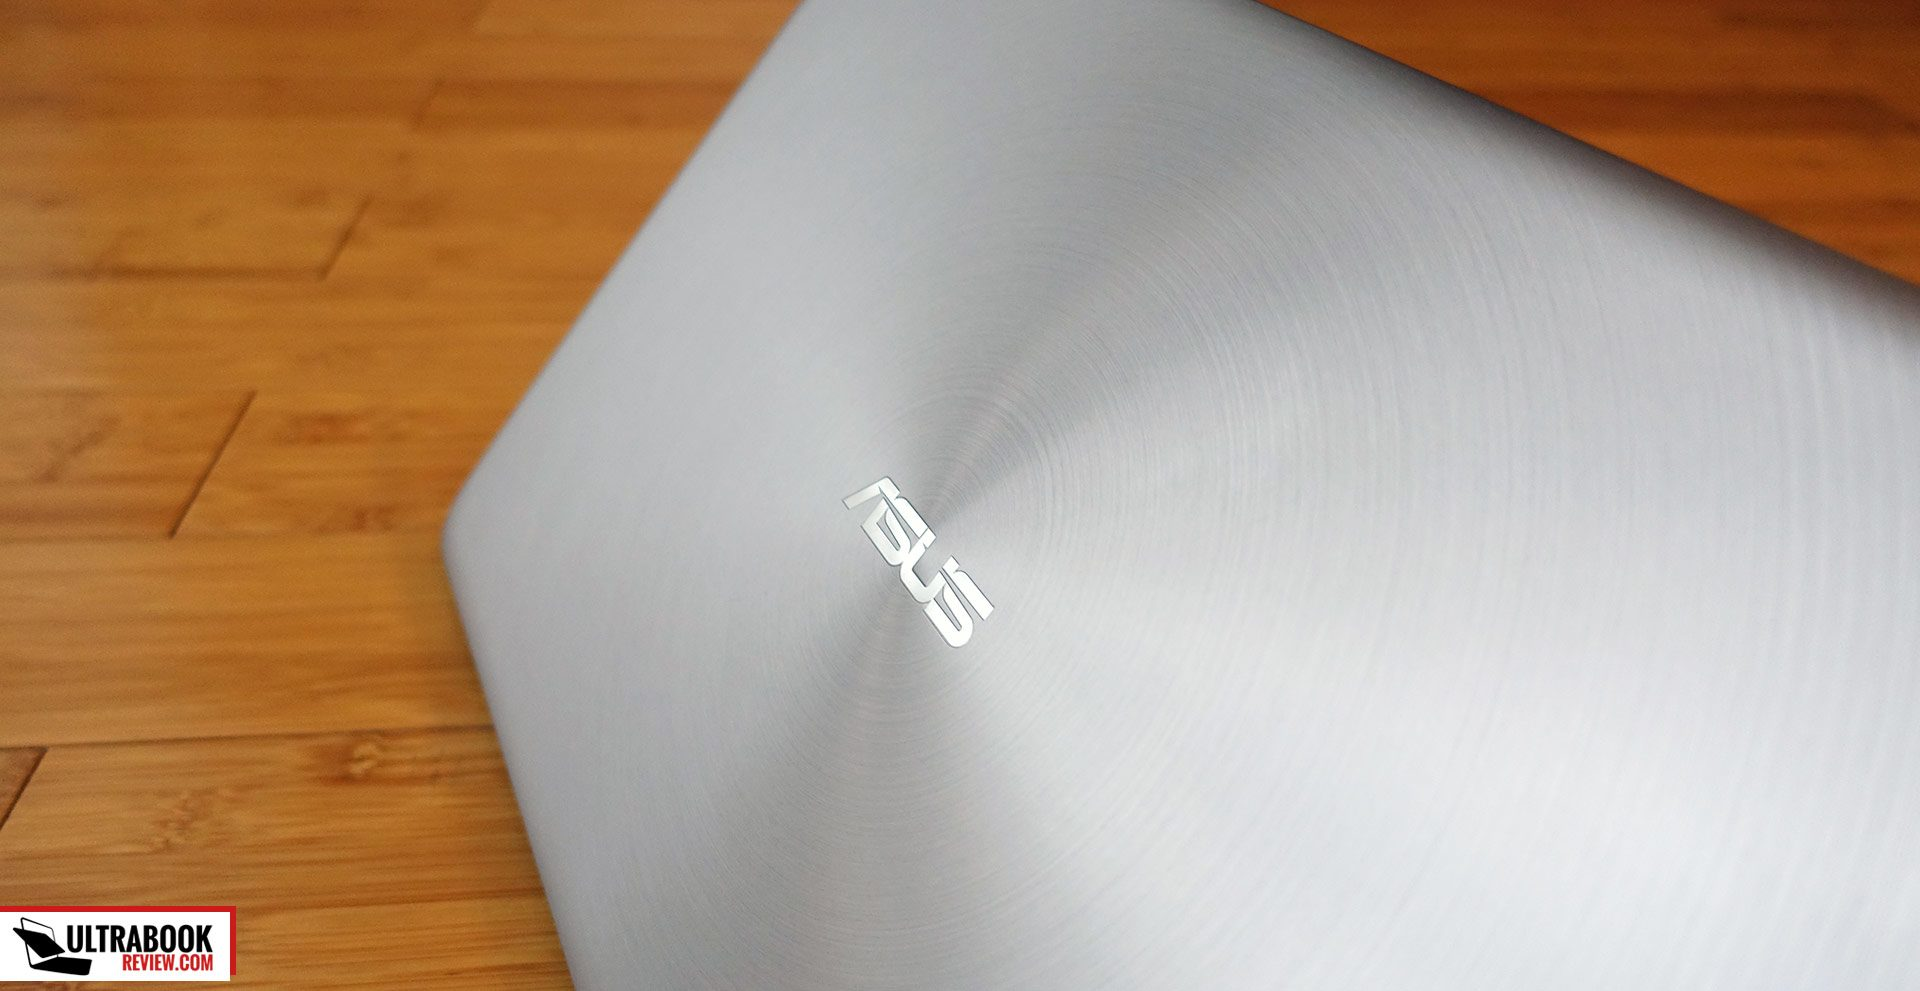 Asus Zenbook UX510UW review - a portable 15-inch all-rounder